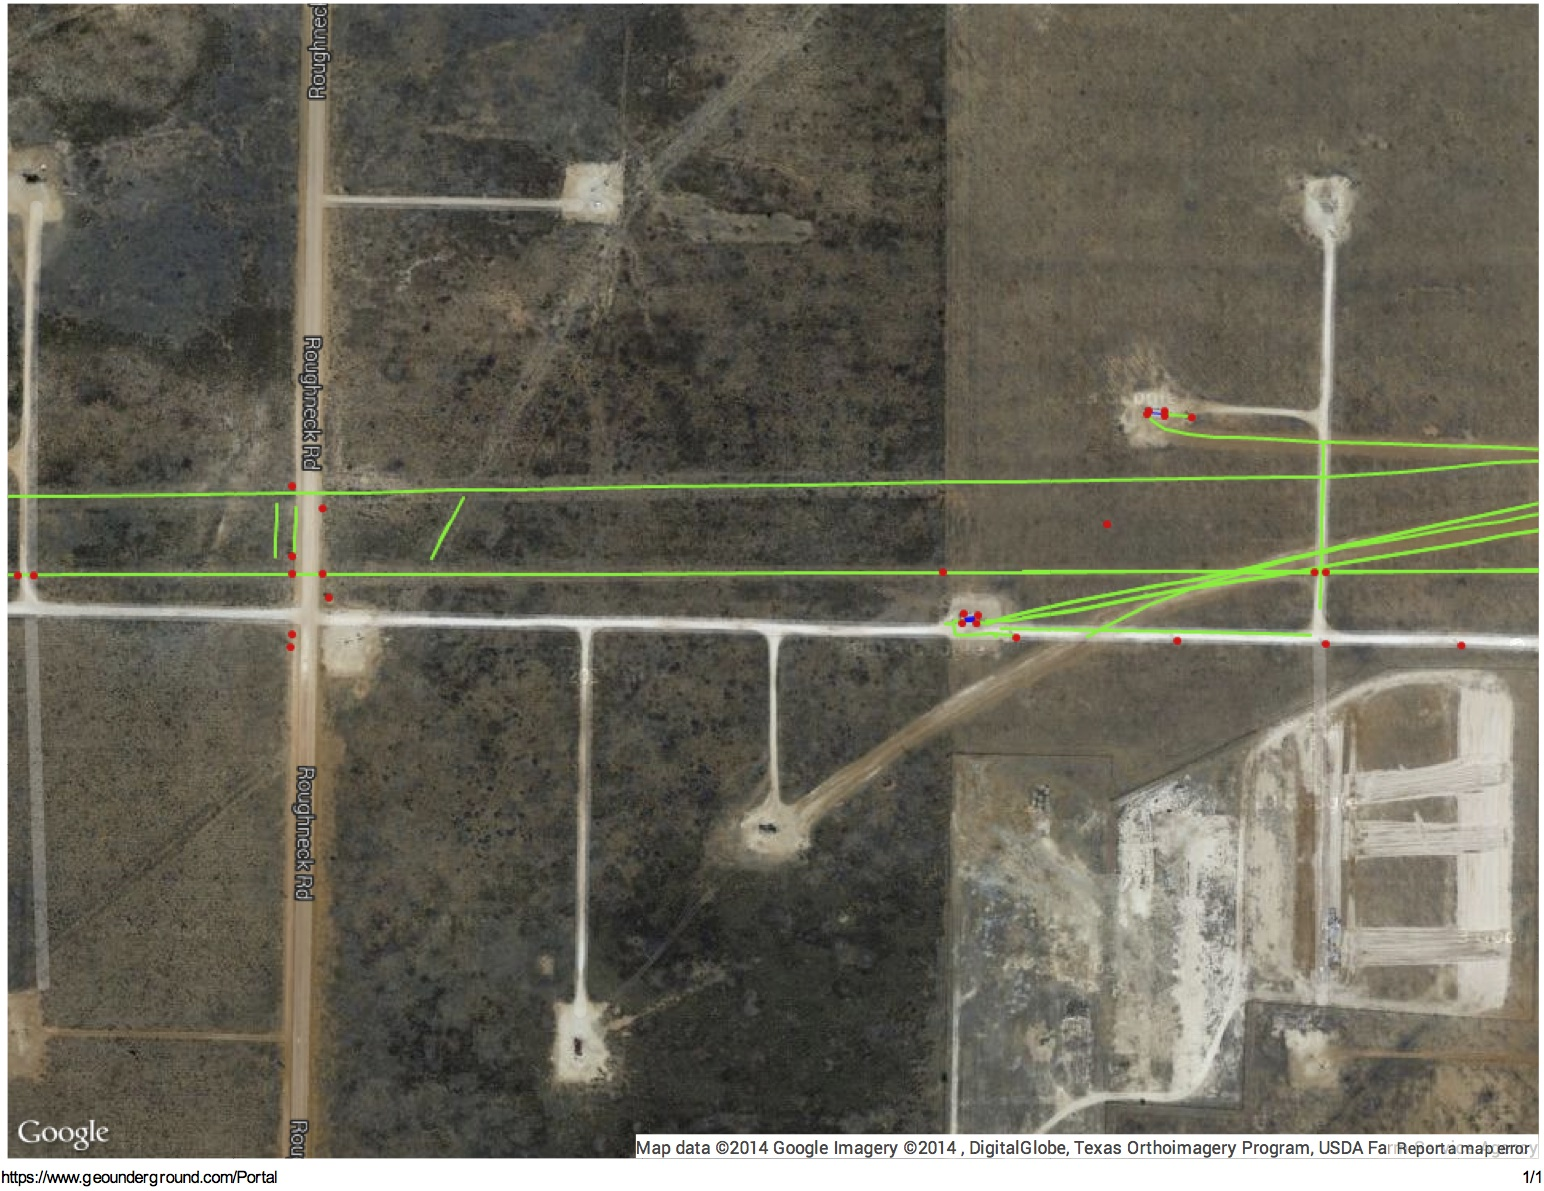 GeoUnderground - Mapping Permian Basin pipelines